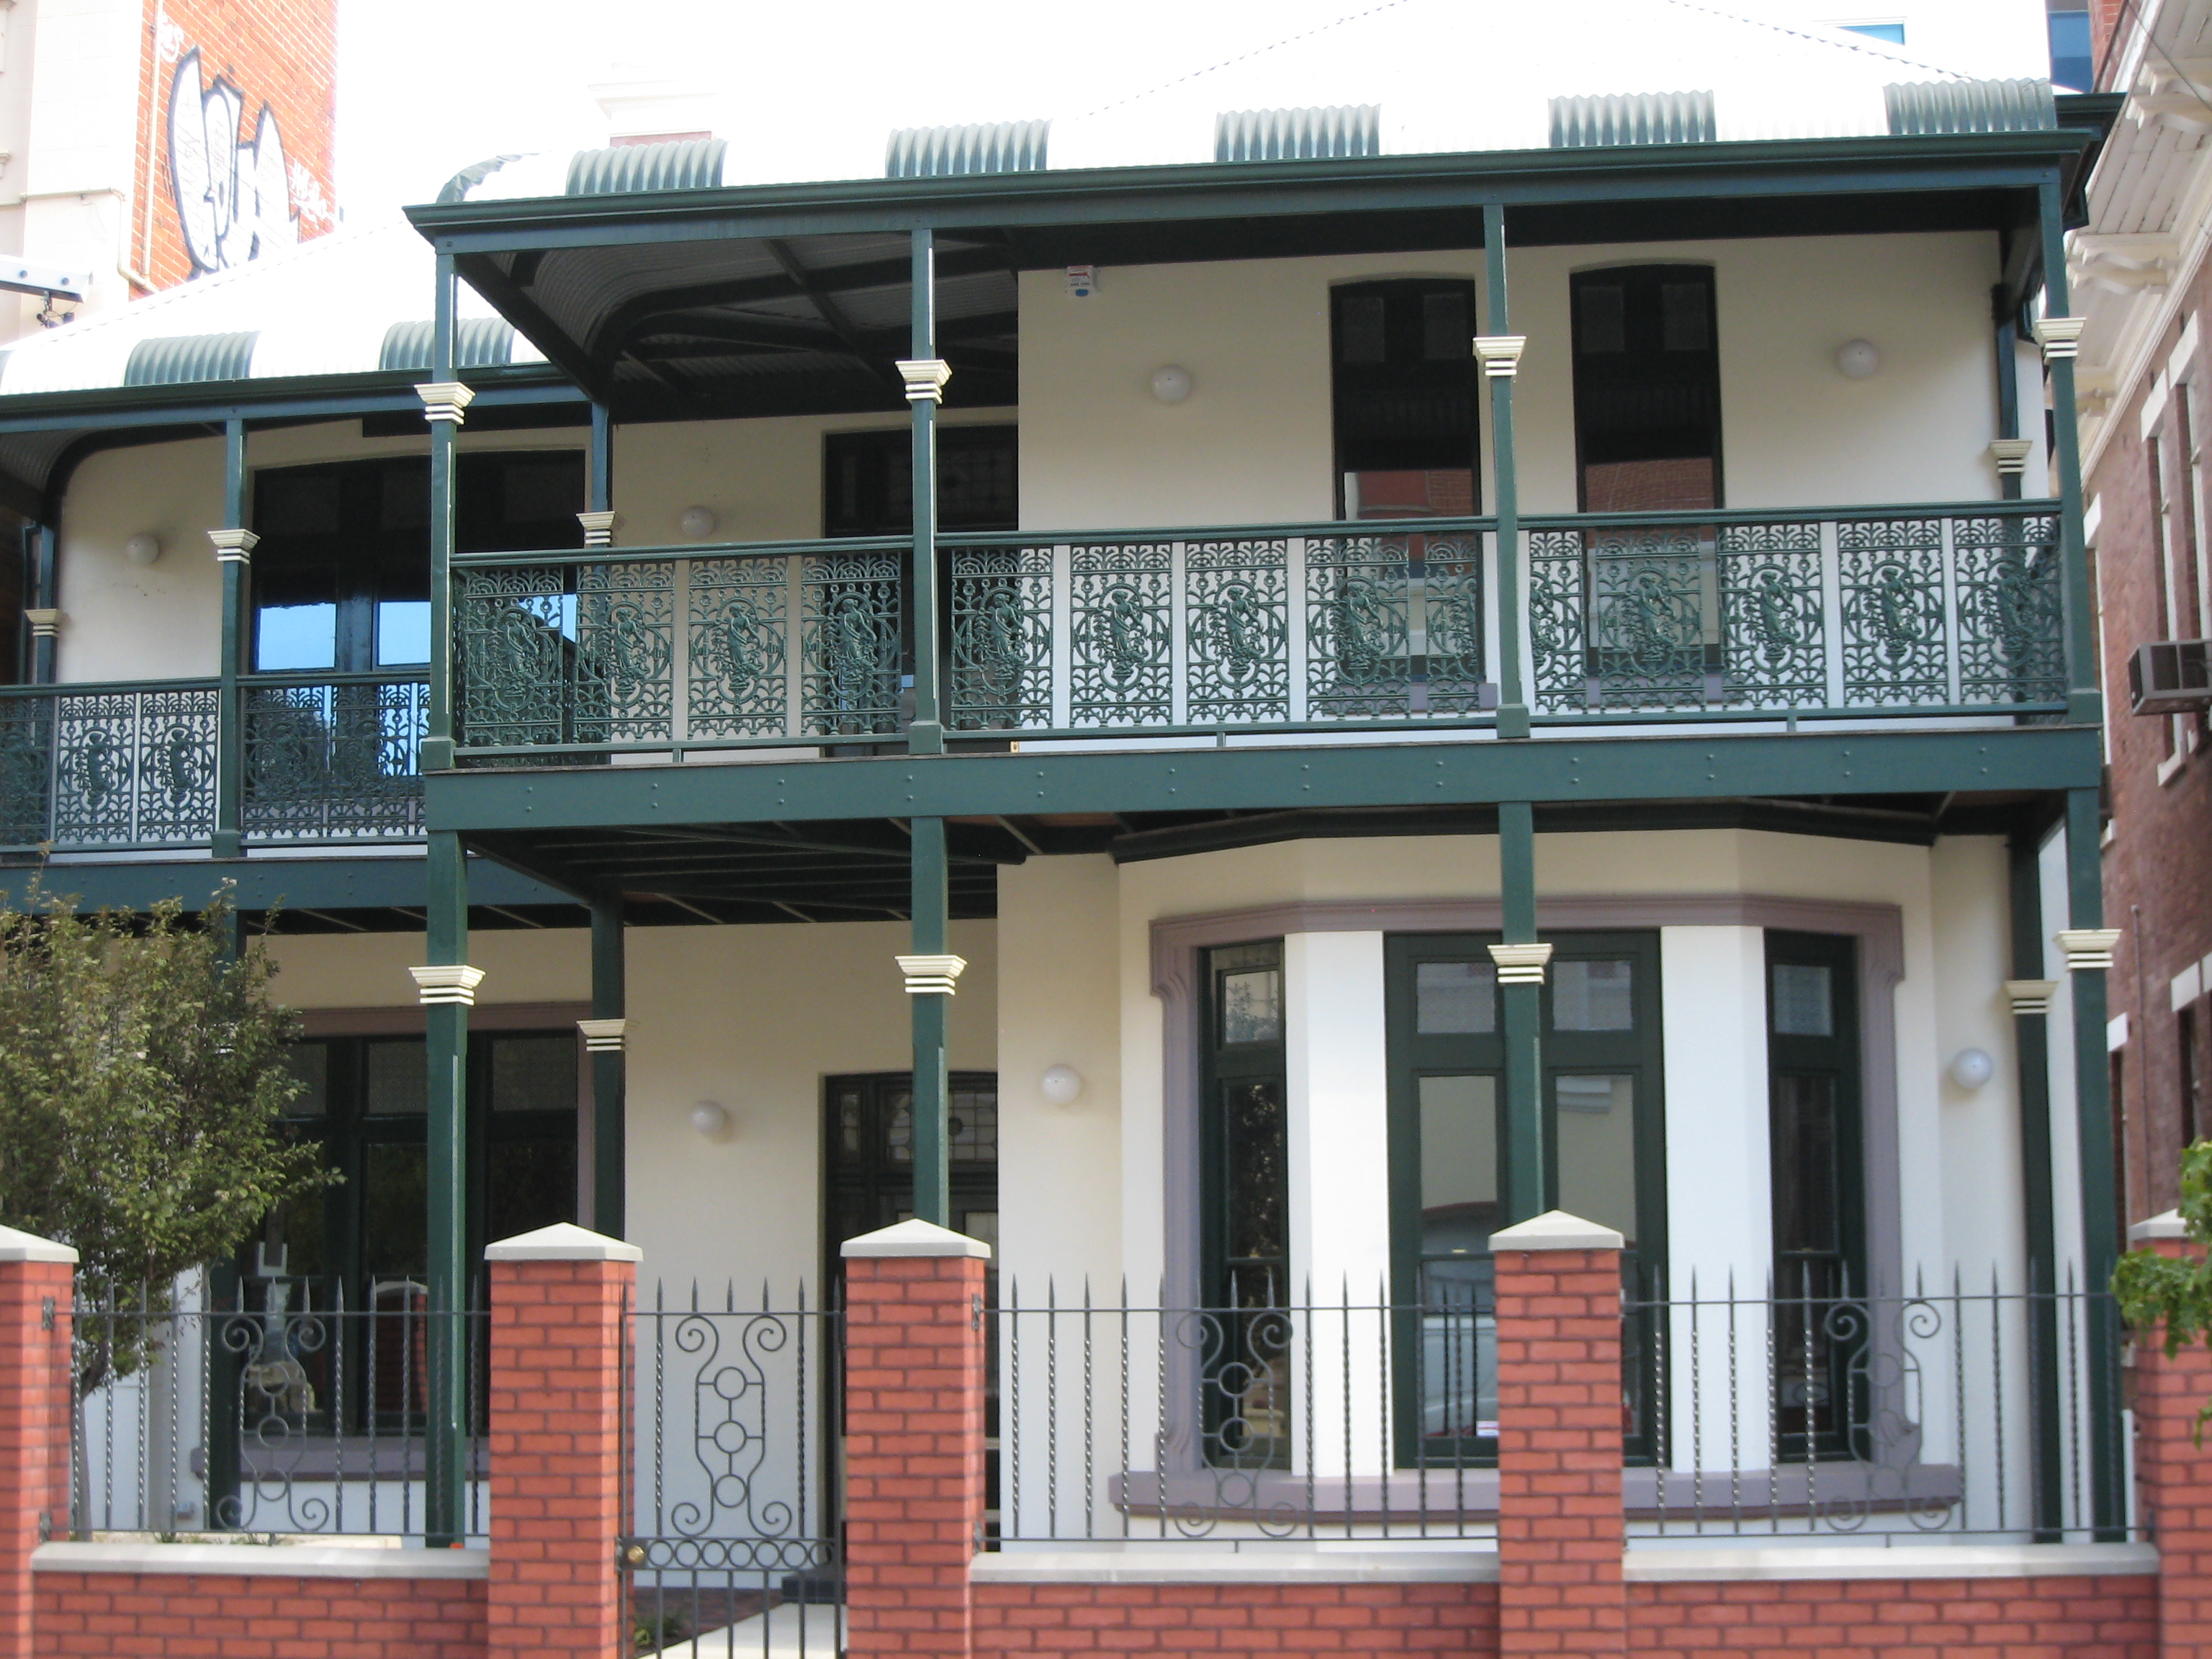 House adjacent to the Young Australia League Building